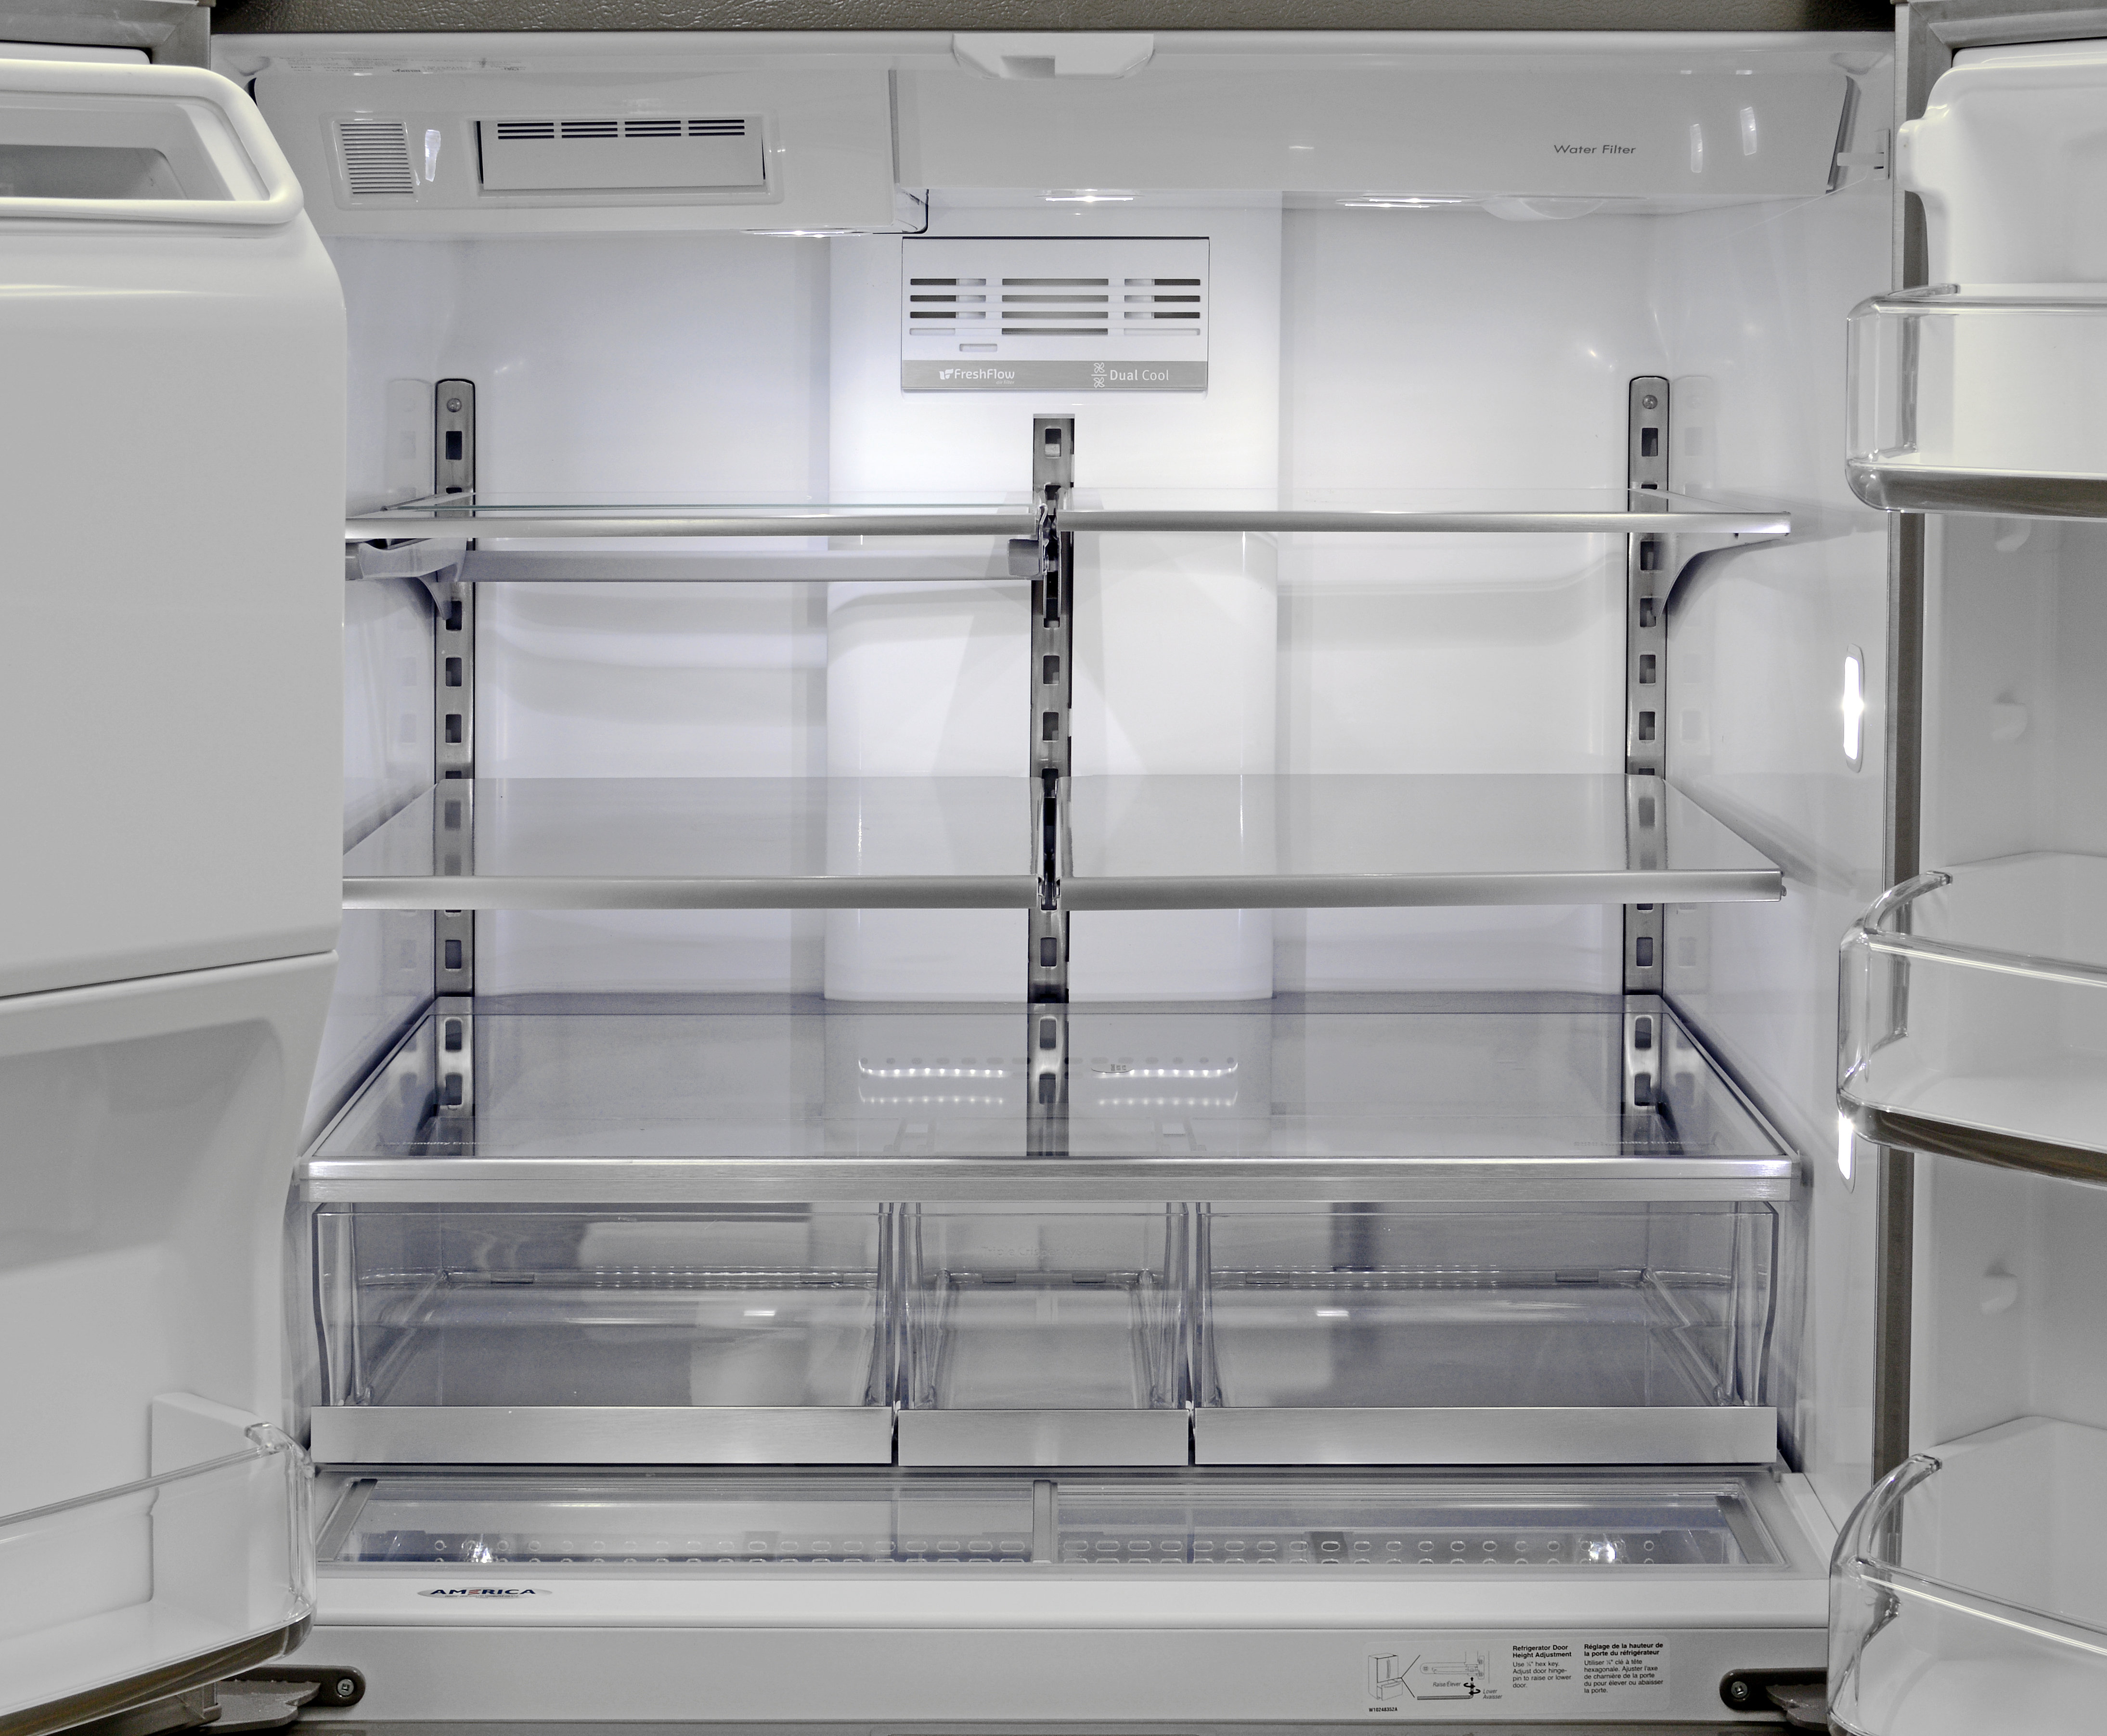 The Maytag MFX2876DRM's main fridge compartment looks great and has plenty of adjustable storage options.